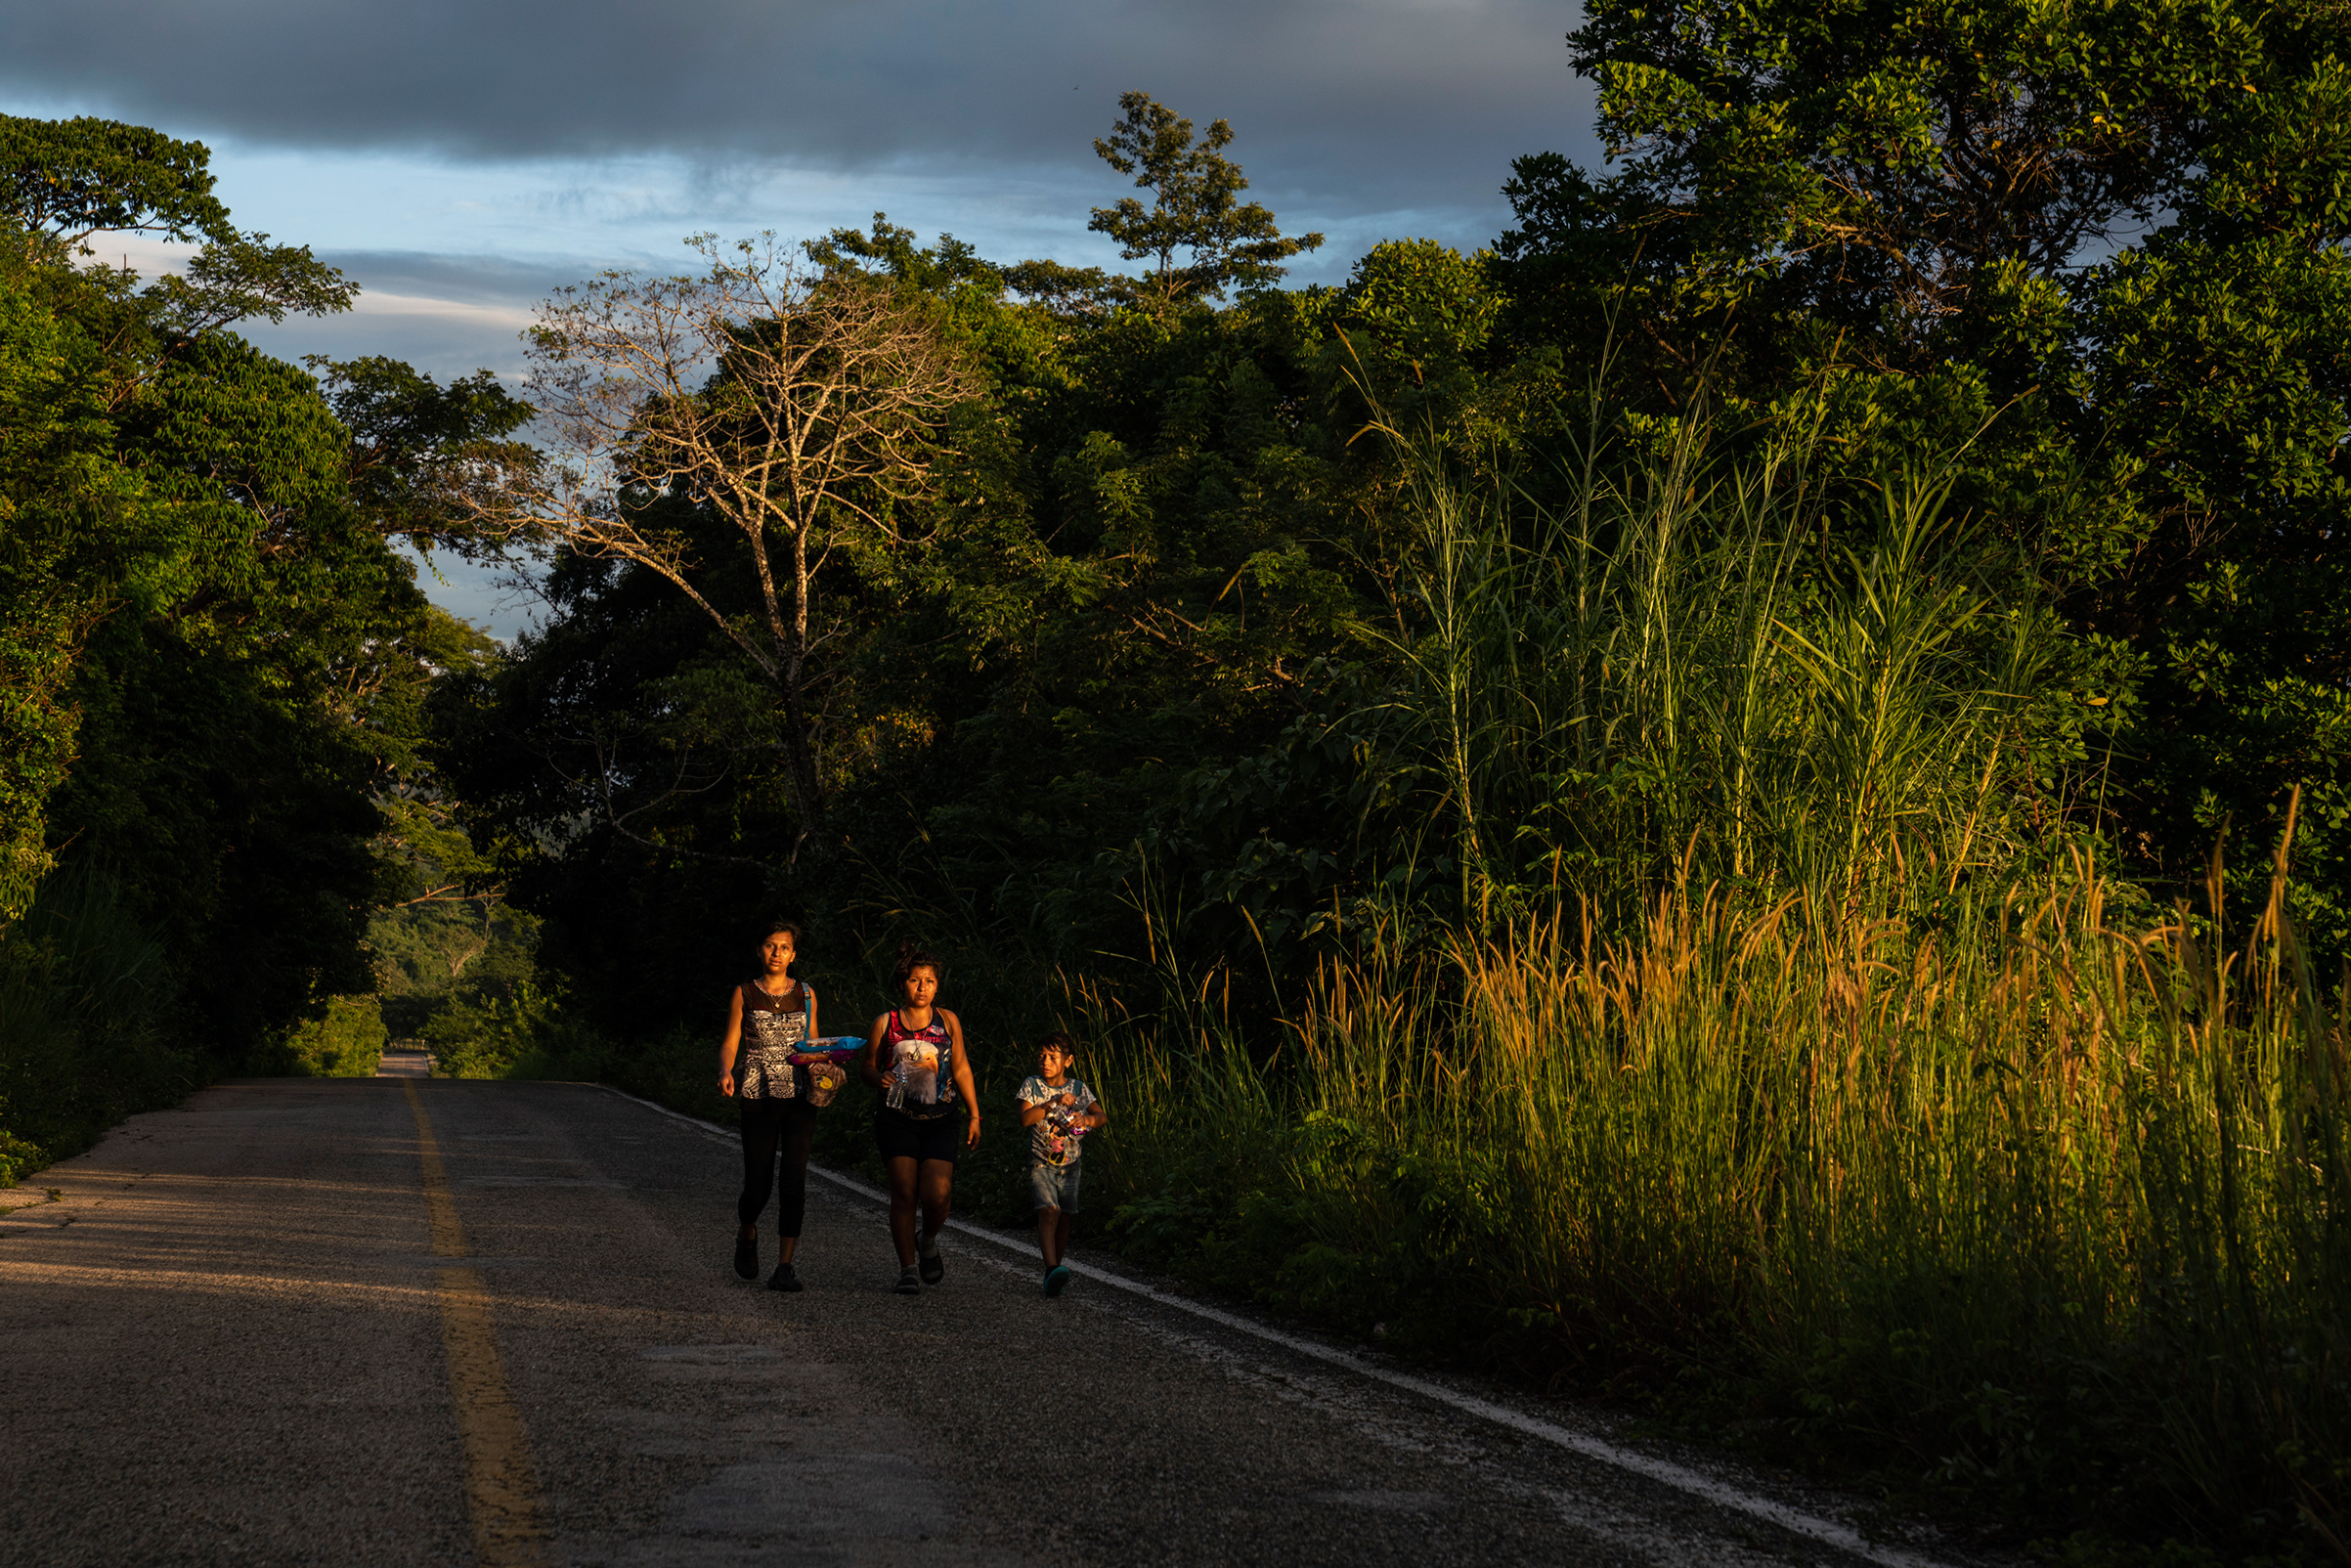 """Migrants walk through highway México 307 on Oct. 21, 2018, near Palenque, Chiapas. The highway is also known by locals as """"El gran corredor del pacífico del migrante,"""" or """"The Great Pacific Corridor of the Migrant. This is a common route for Honduran migrants due to the proximity to their country."""